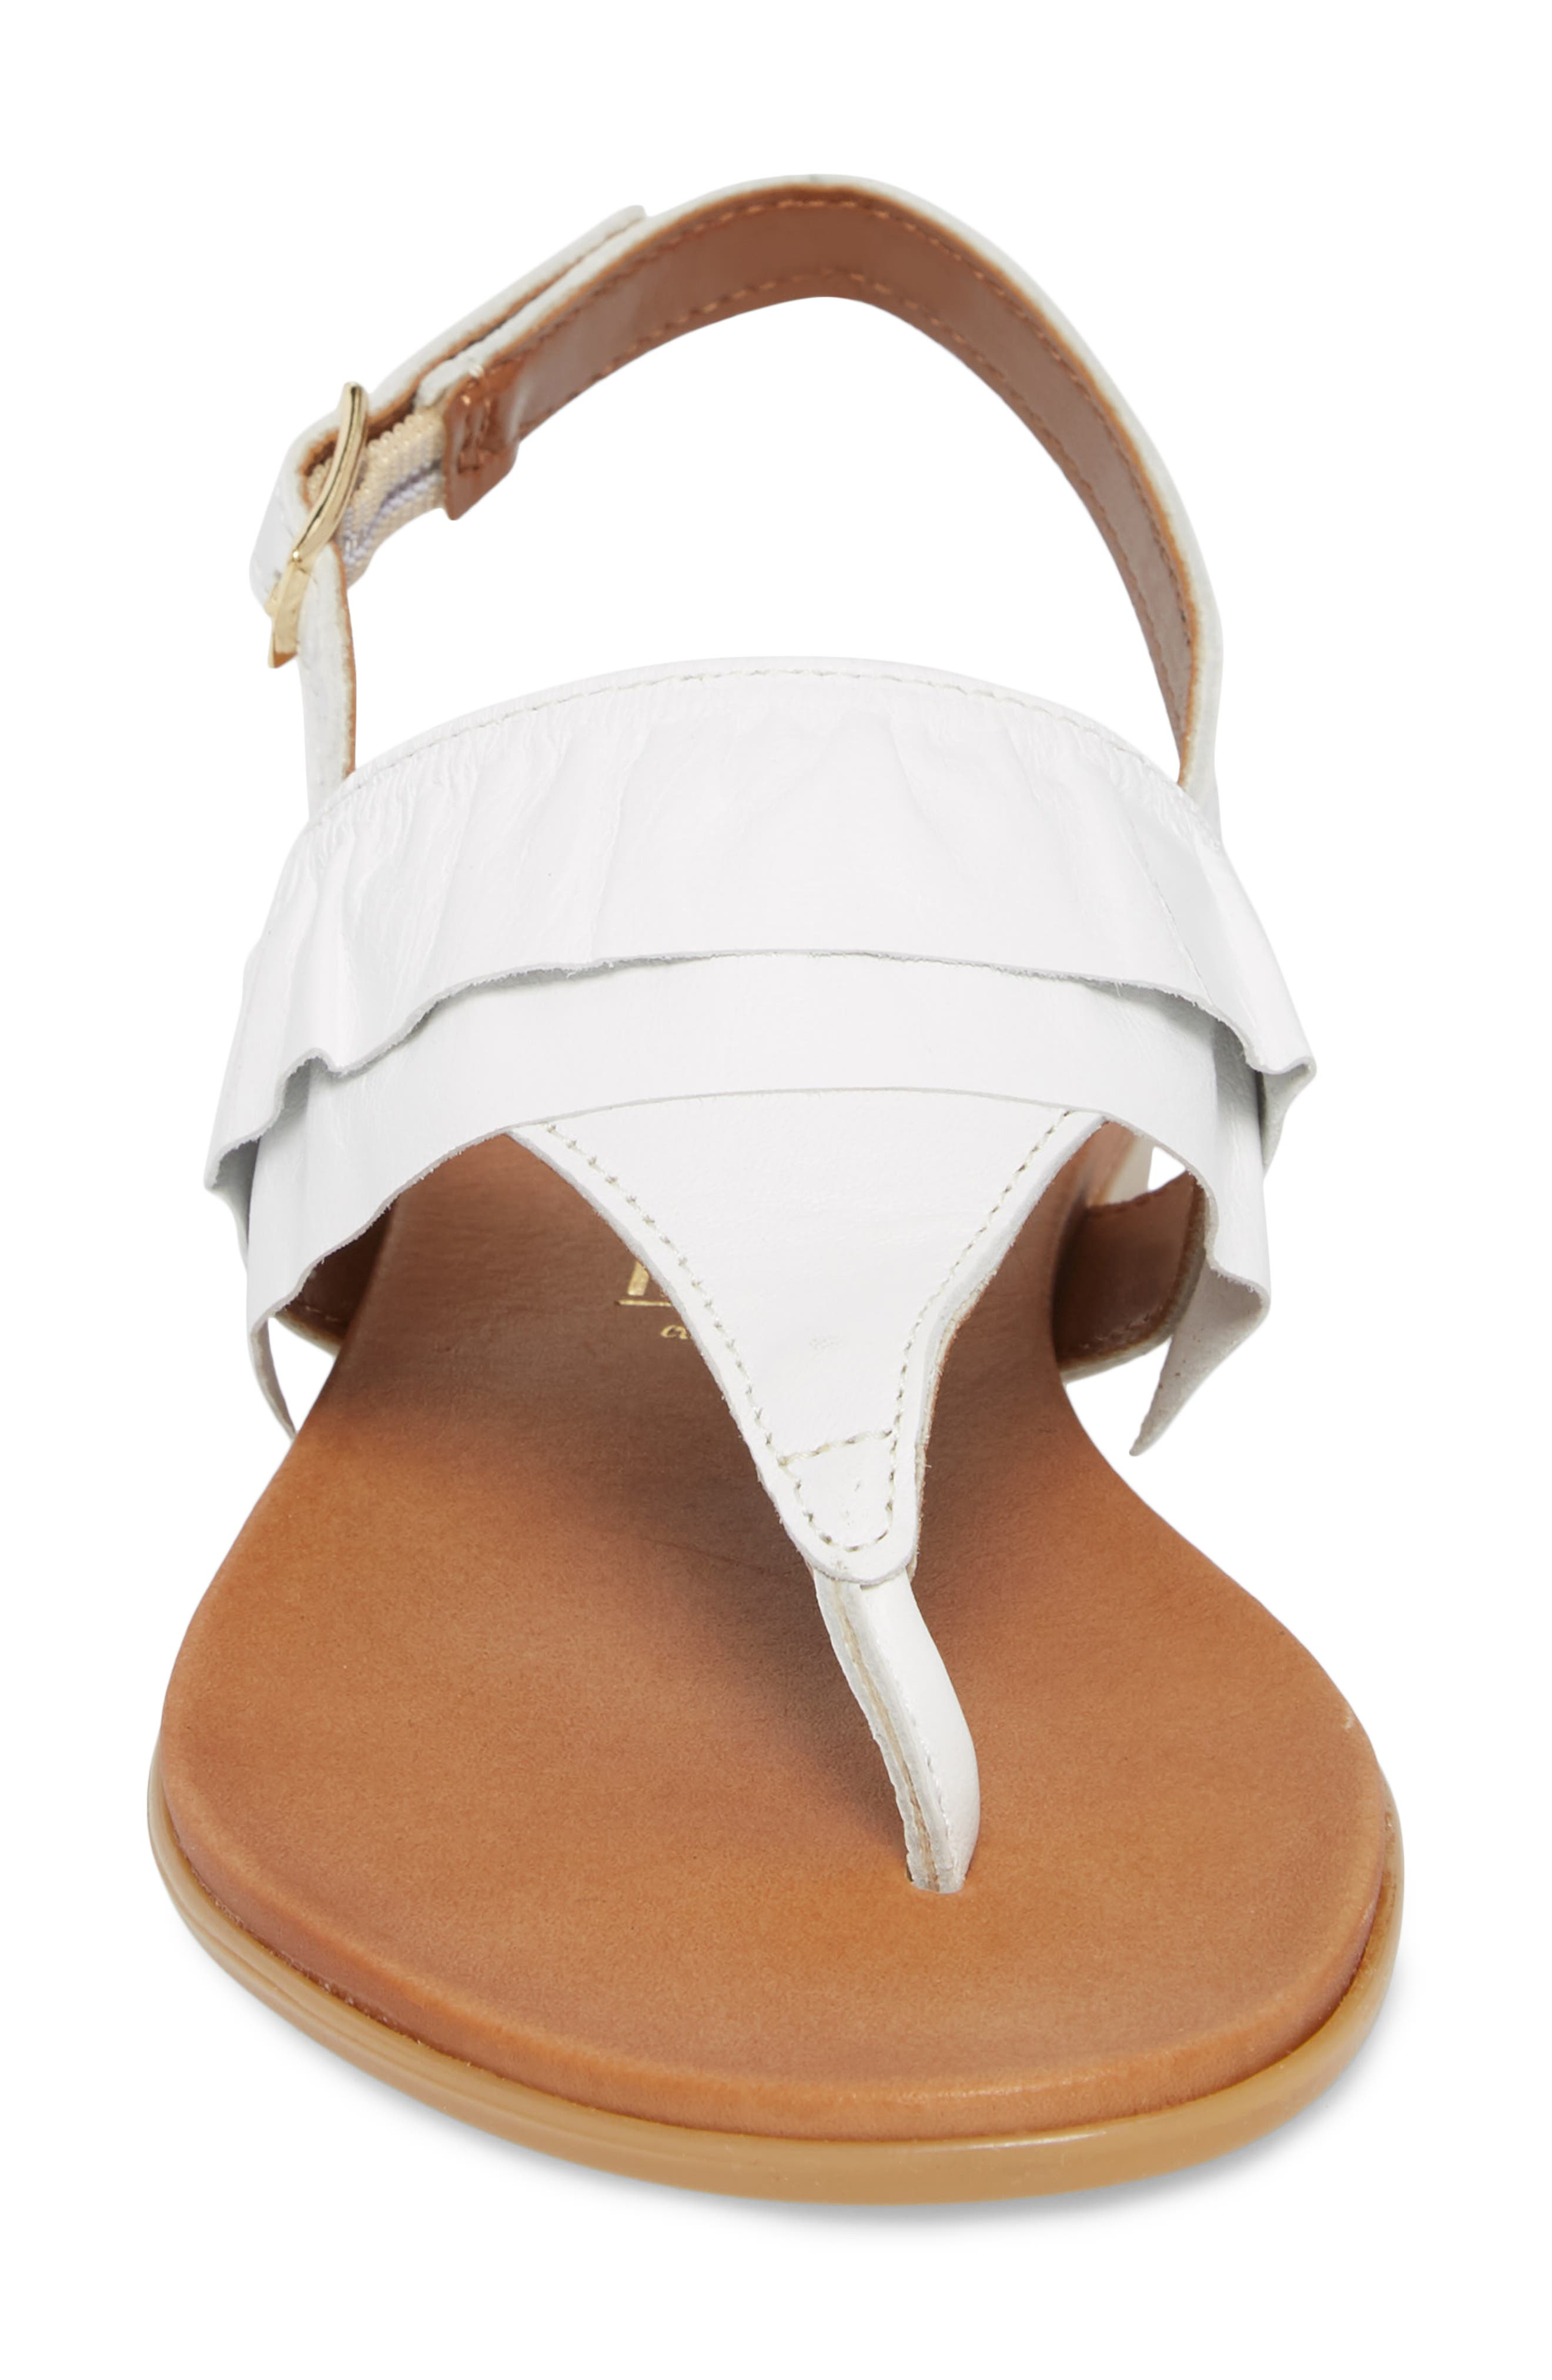 Seclusion Ruffle Sandal,                             Alternate thumbnail 4, color,                             White Leather